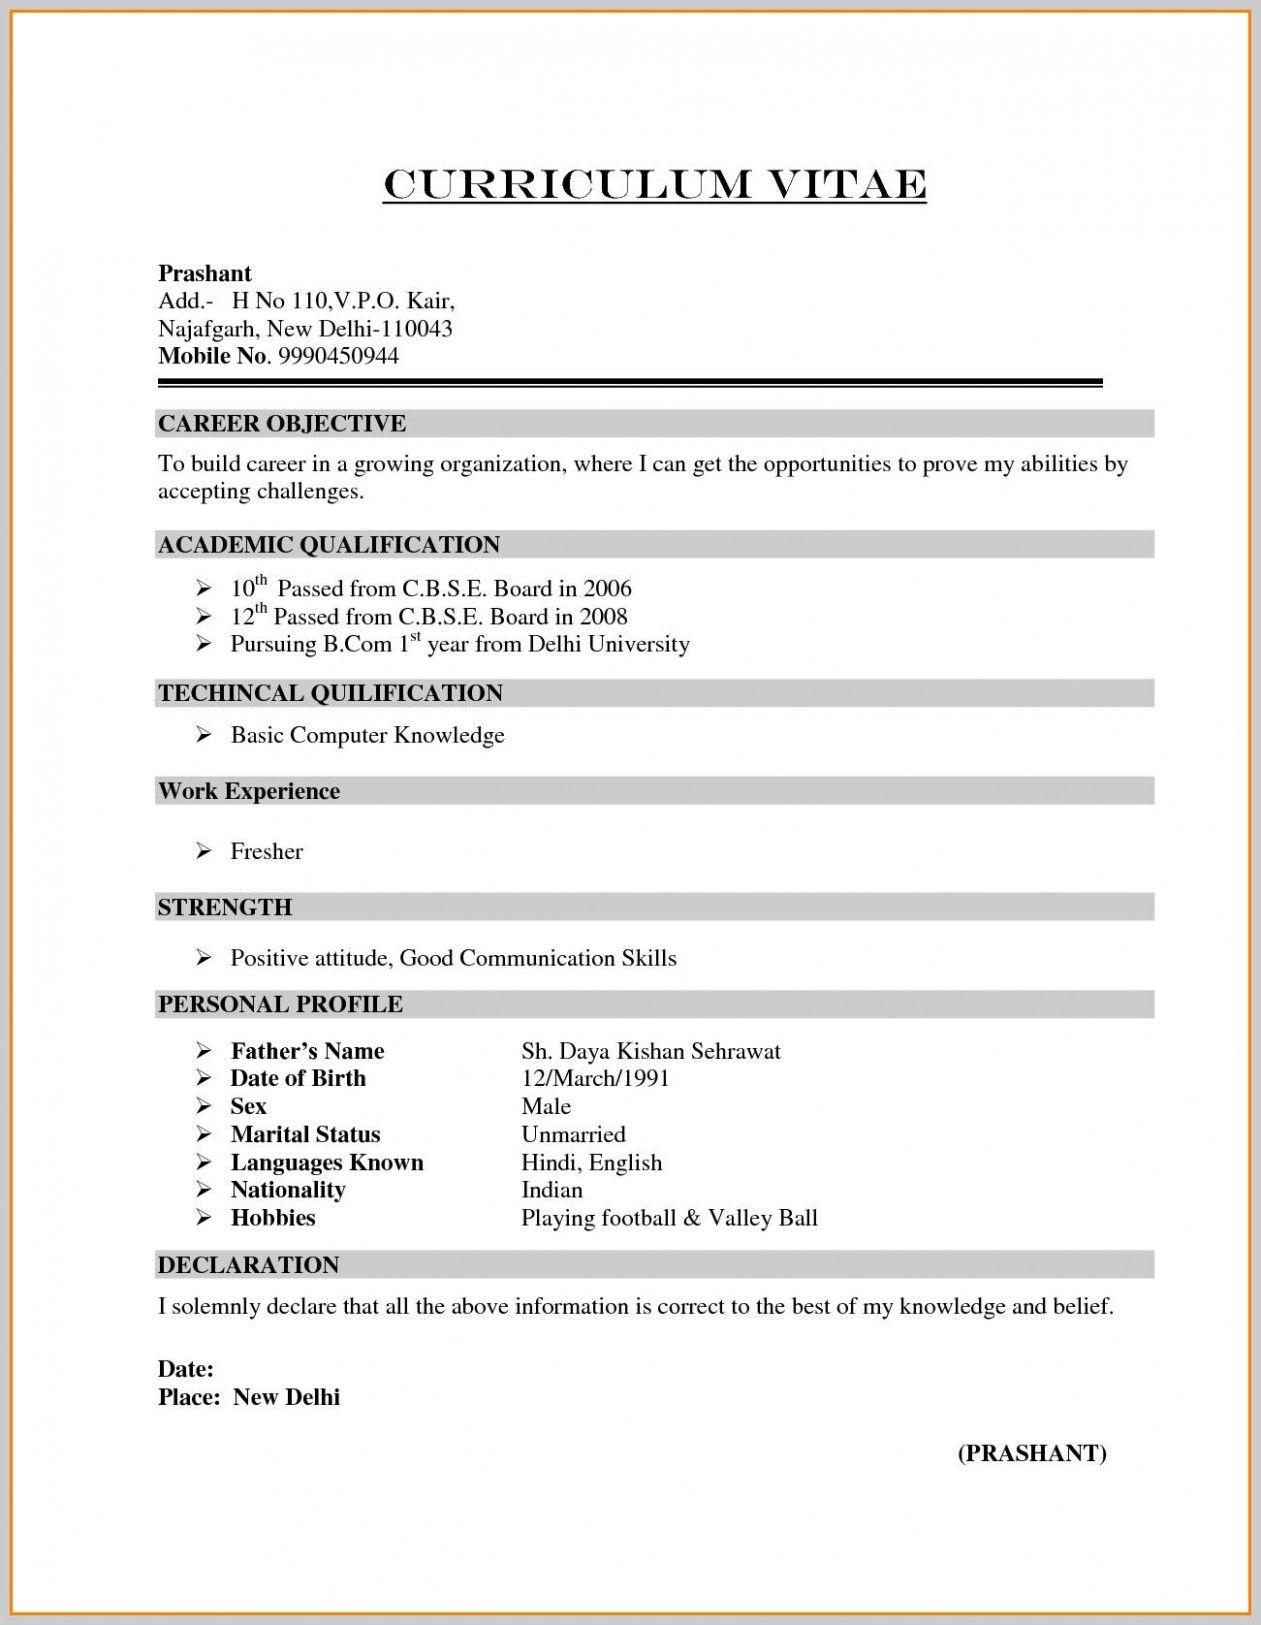 14 Easy Resume Format For 10Th Go in 2020 Job resume